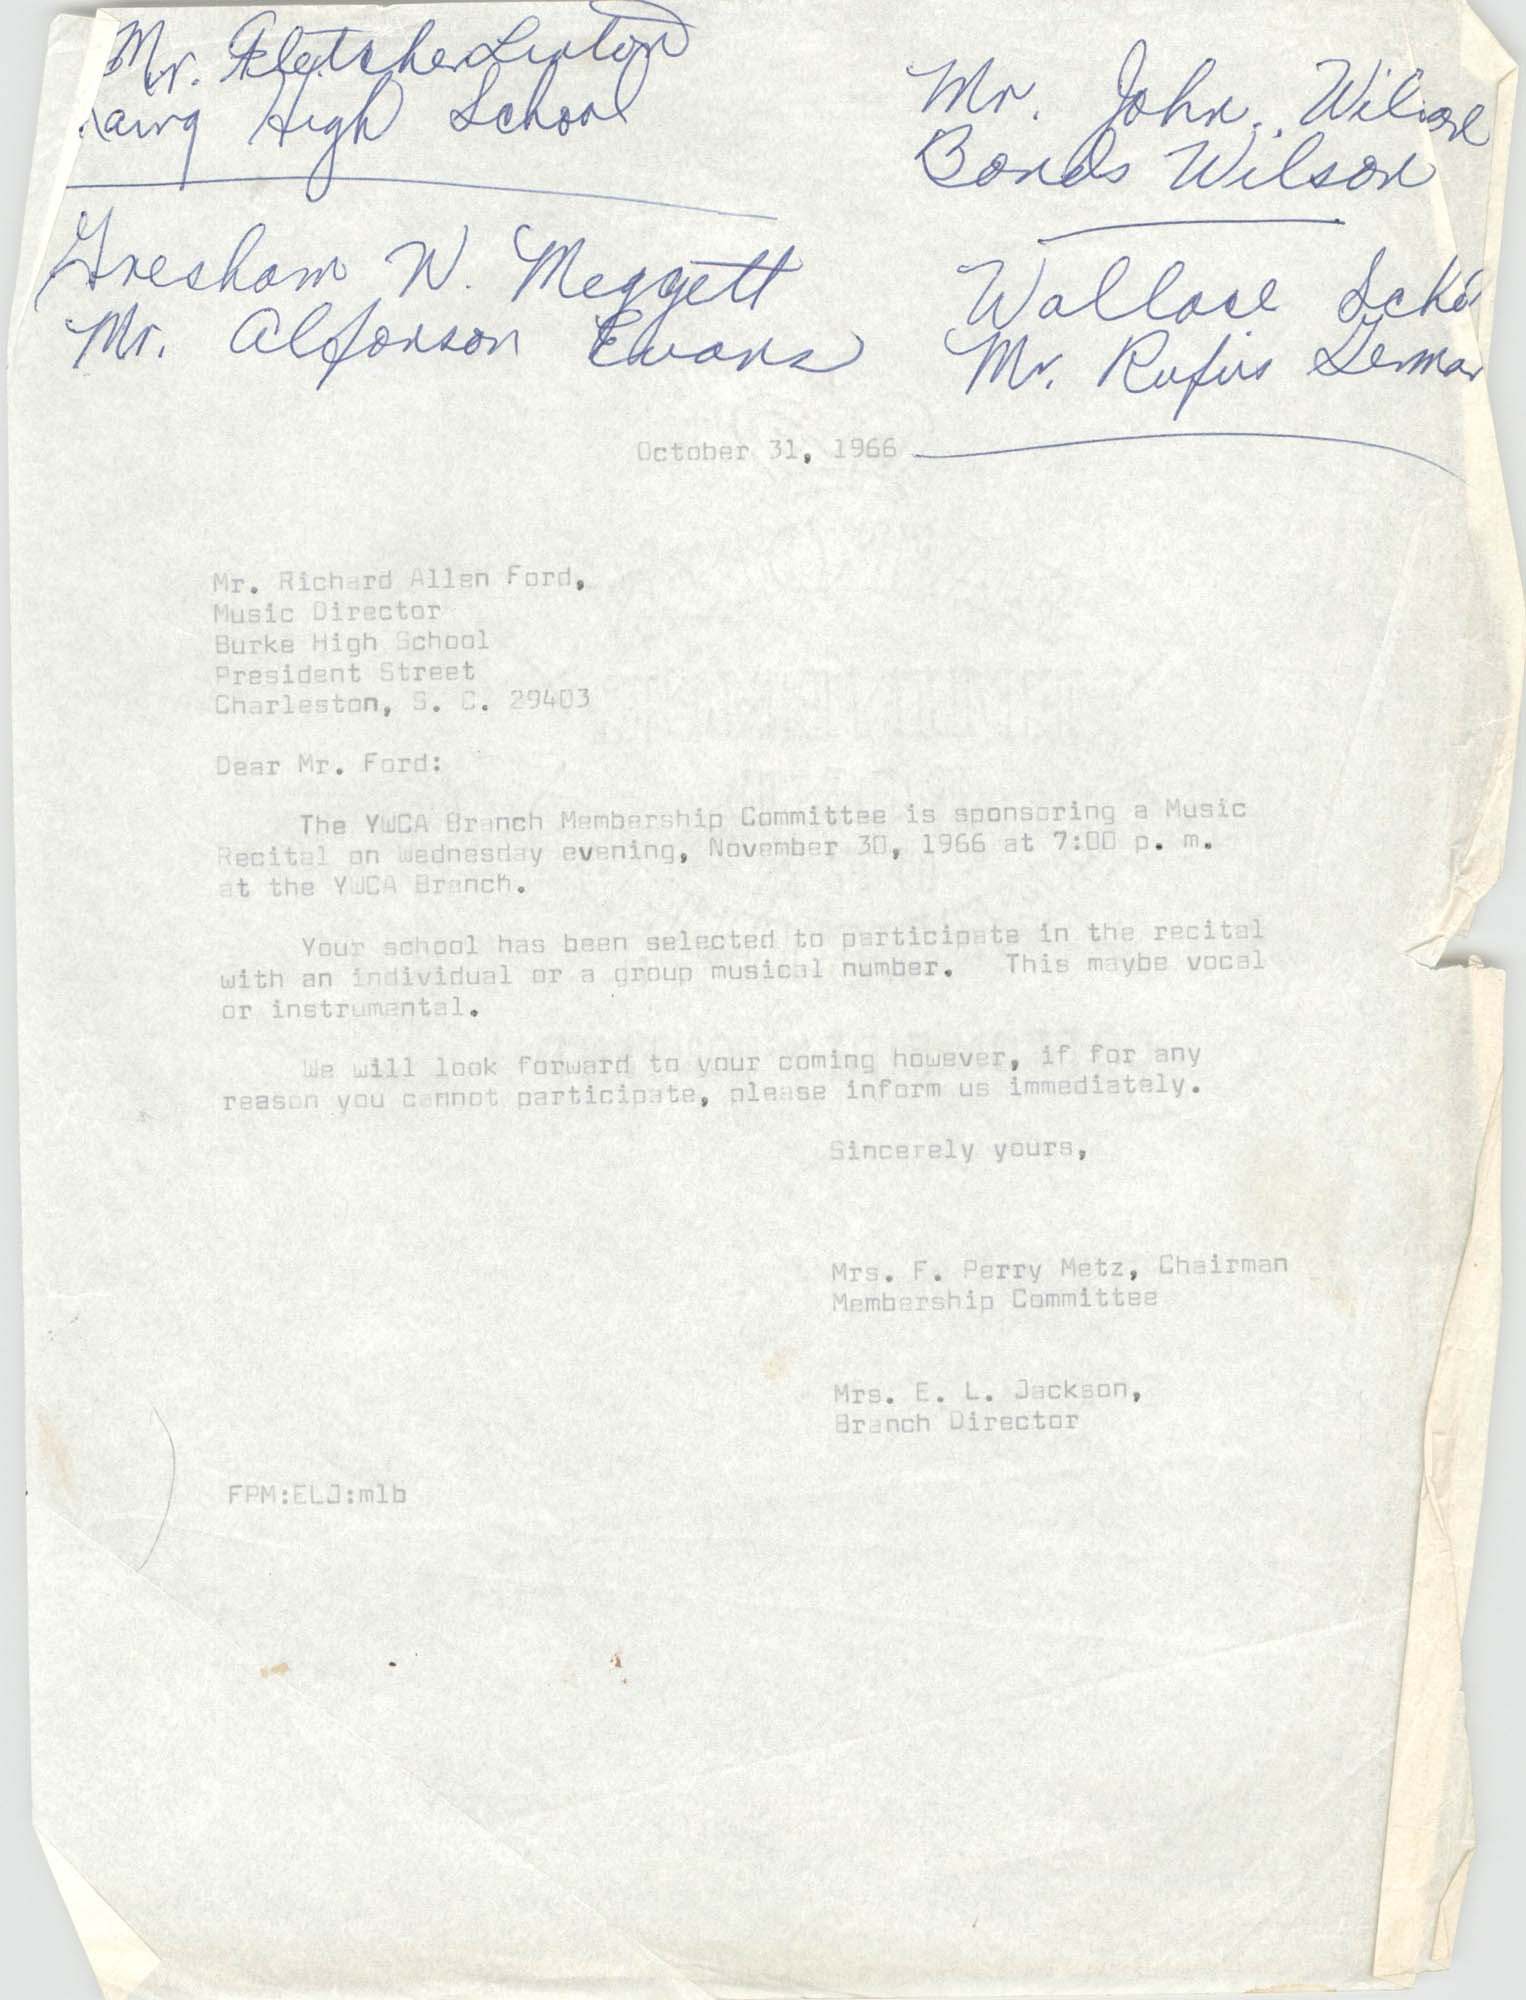 Letter from Mrs. F. Perry Metz and Christine O. Jackson to Richard Allen Ford, October 31, 1966